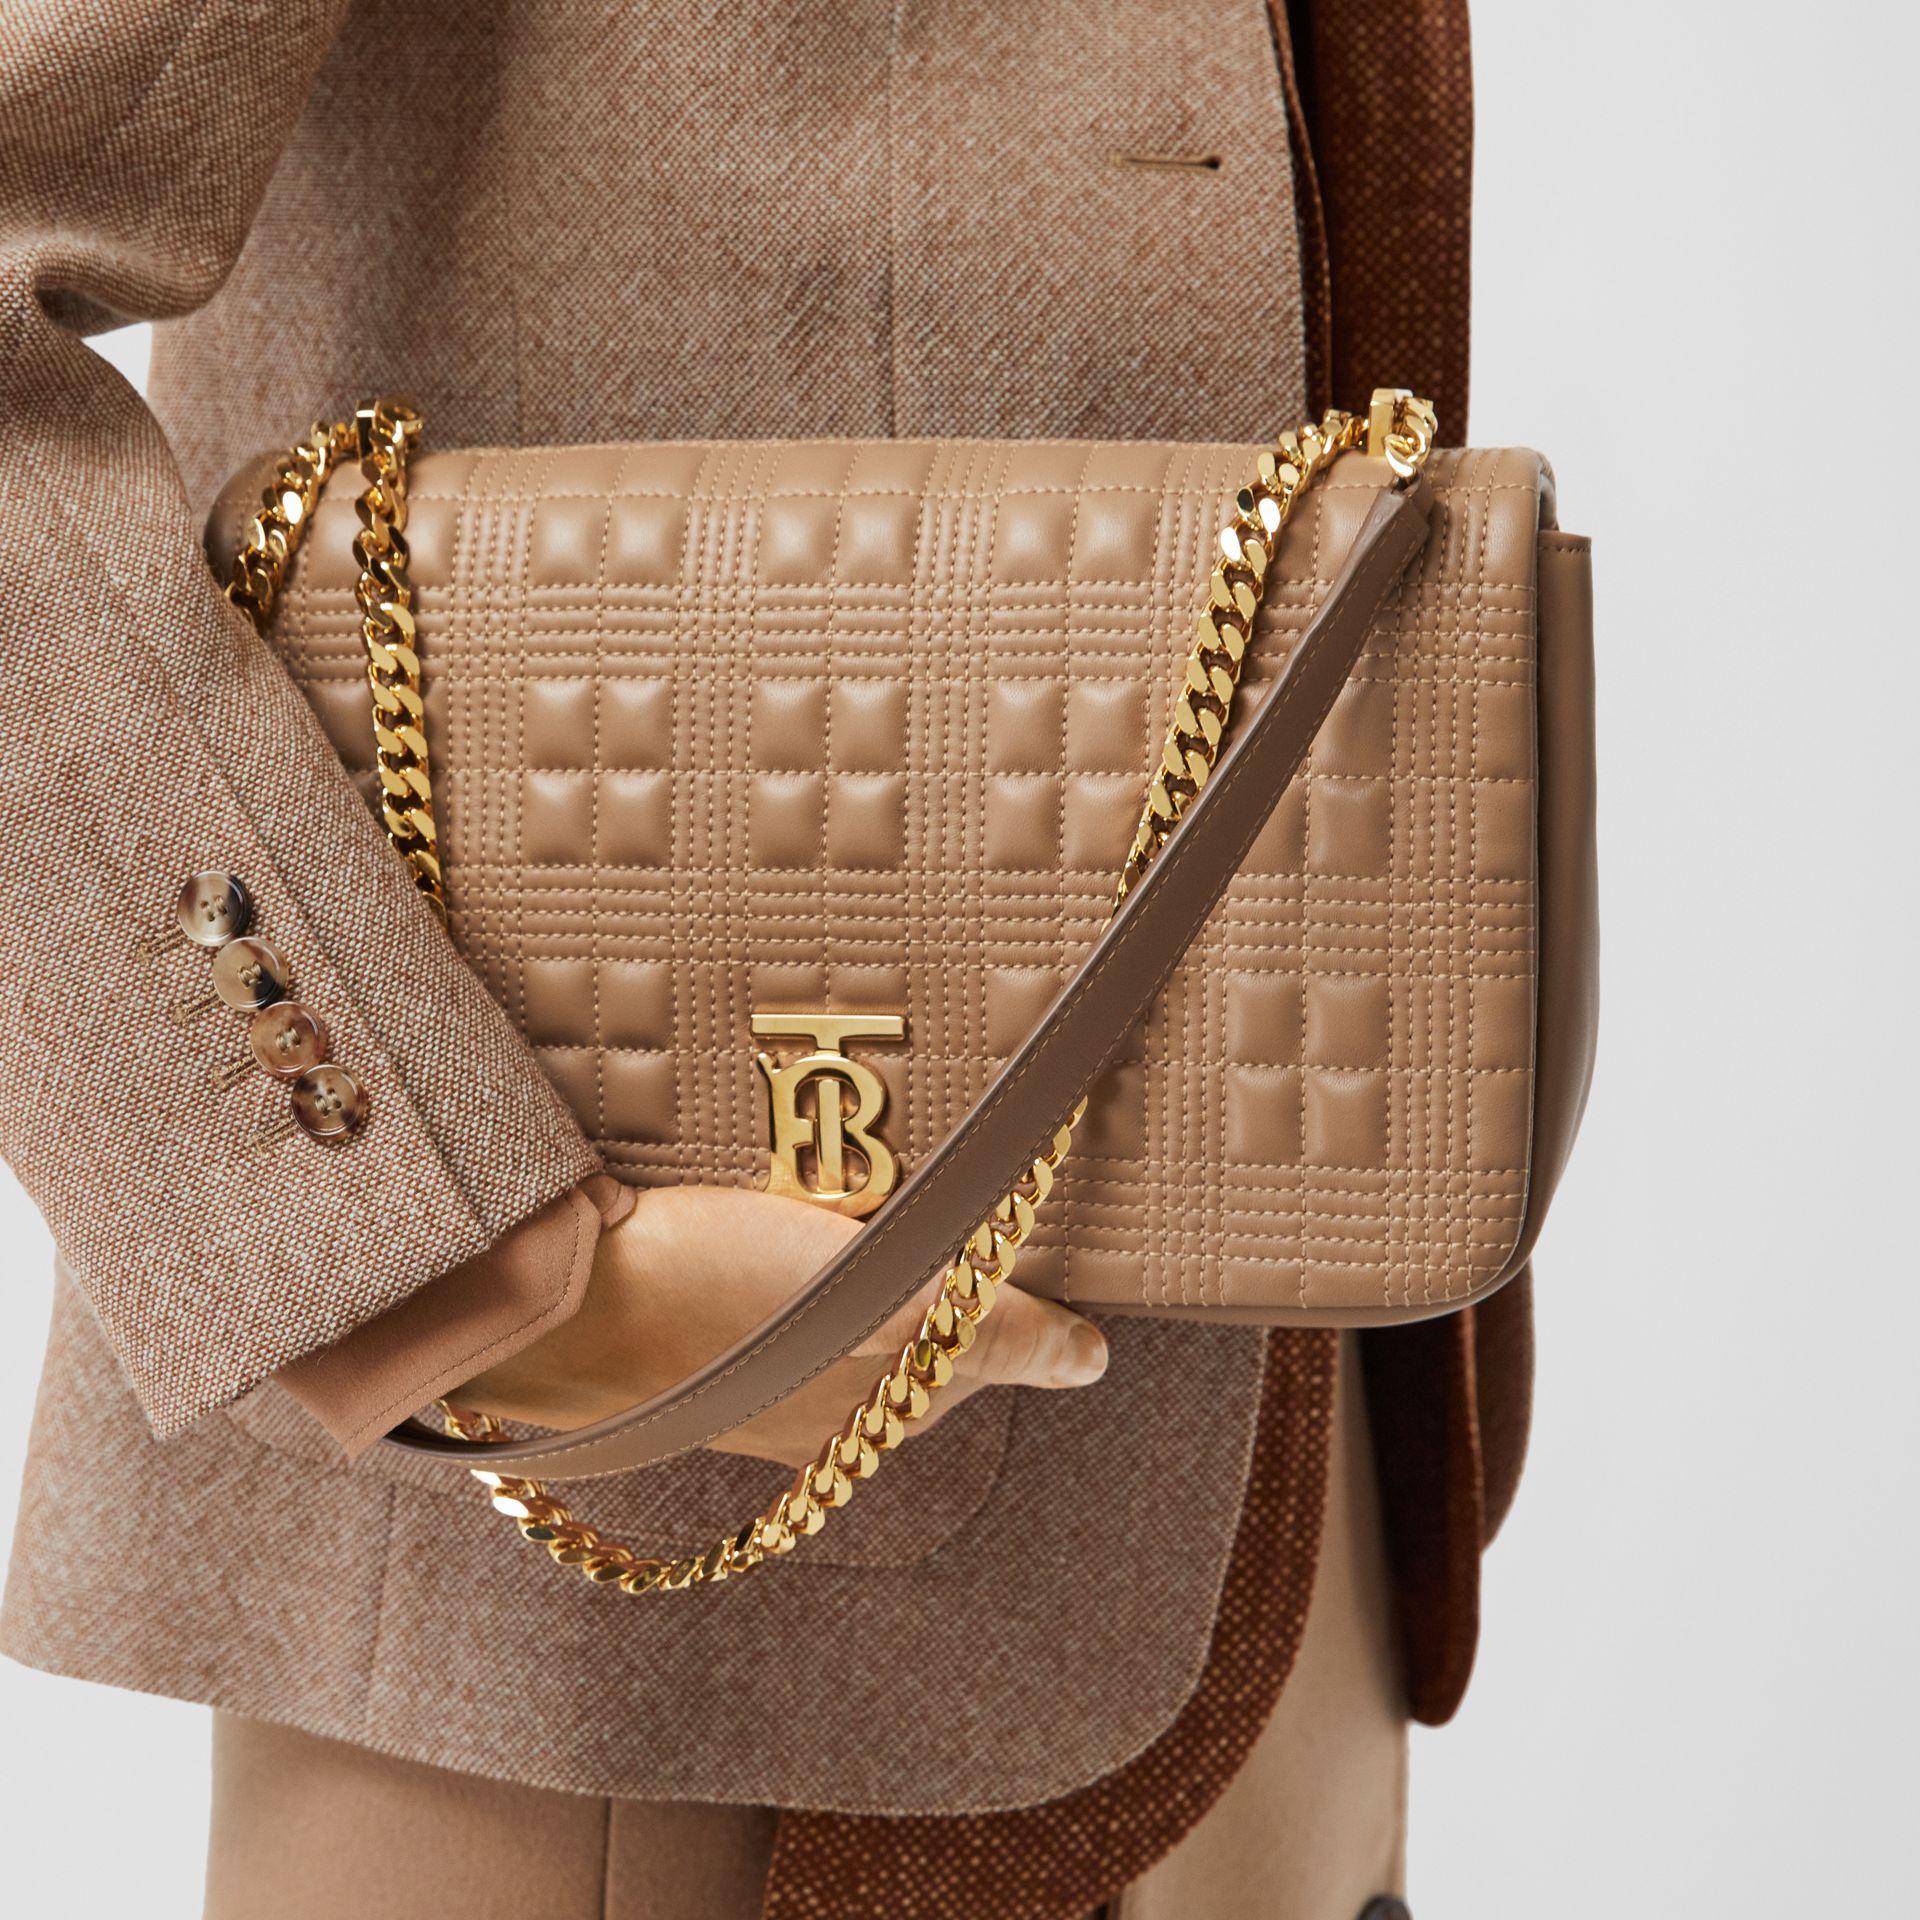 Medium Quilted Lambskin Lola Bag in Camel/light Gold - Women | Burberry - gallery image 8